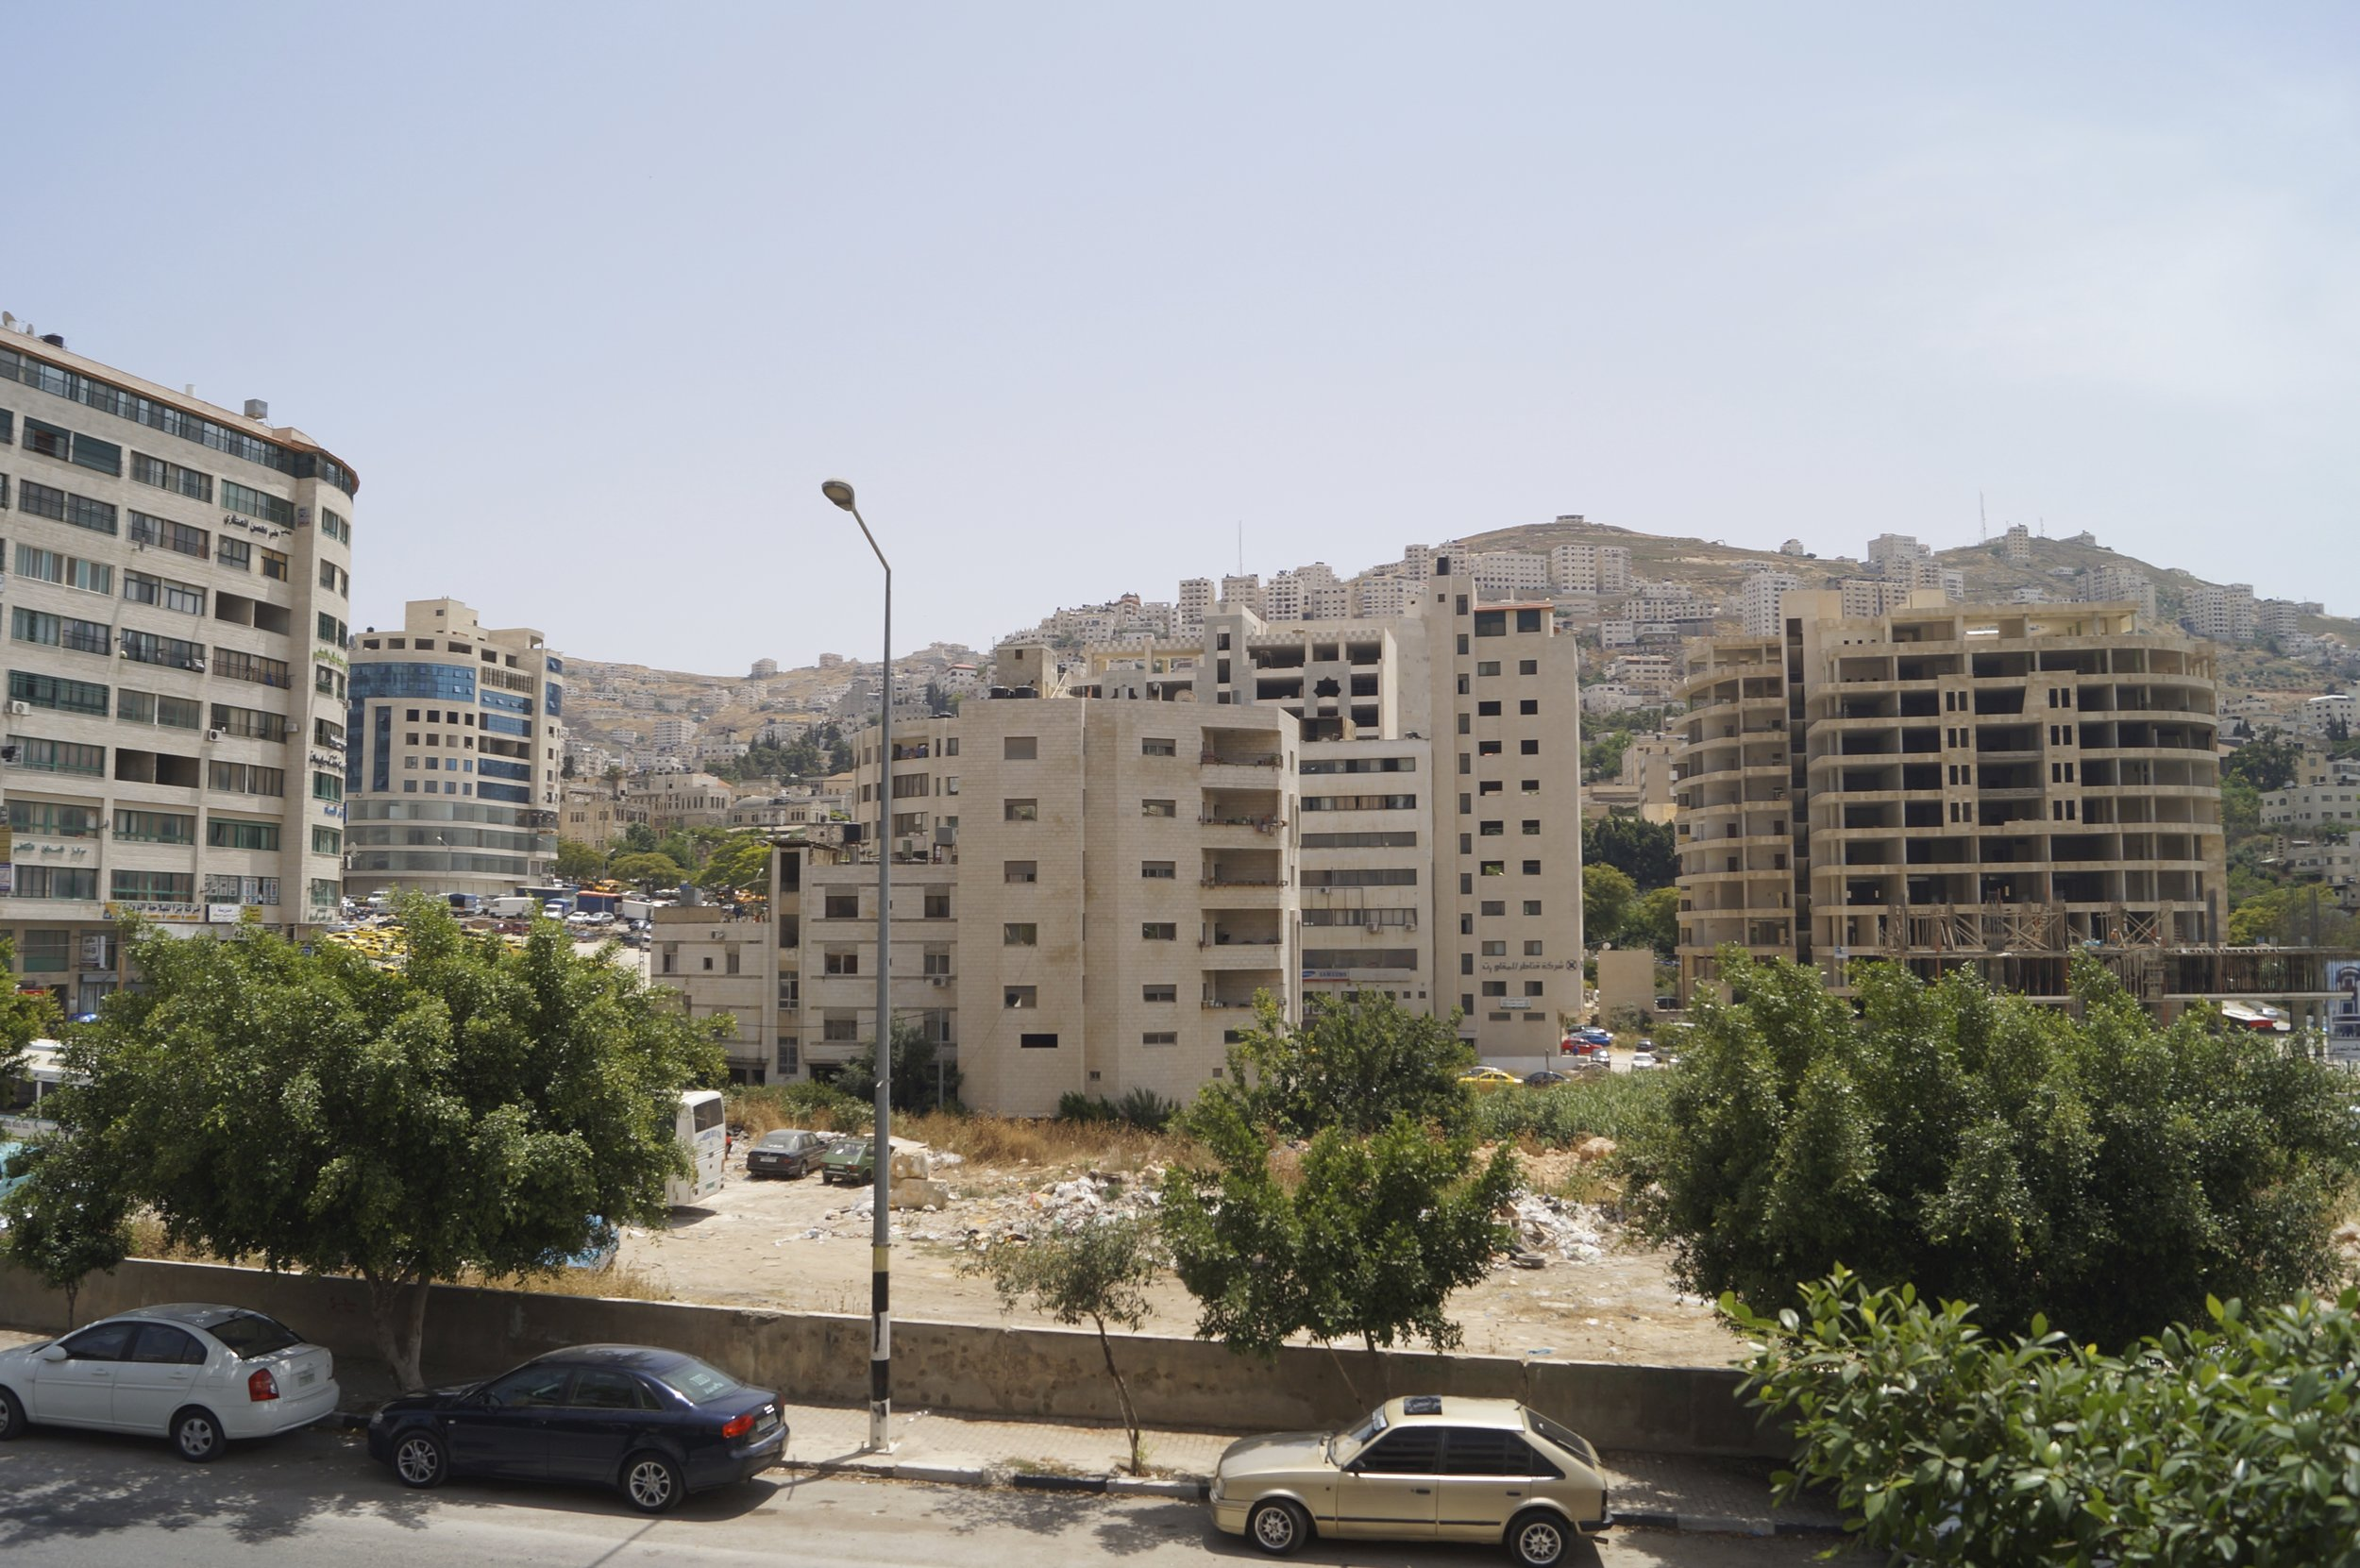 The view from Shahrat's baclony, overlooking the Main Street of Nablus.